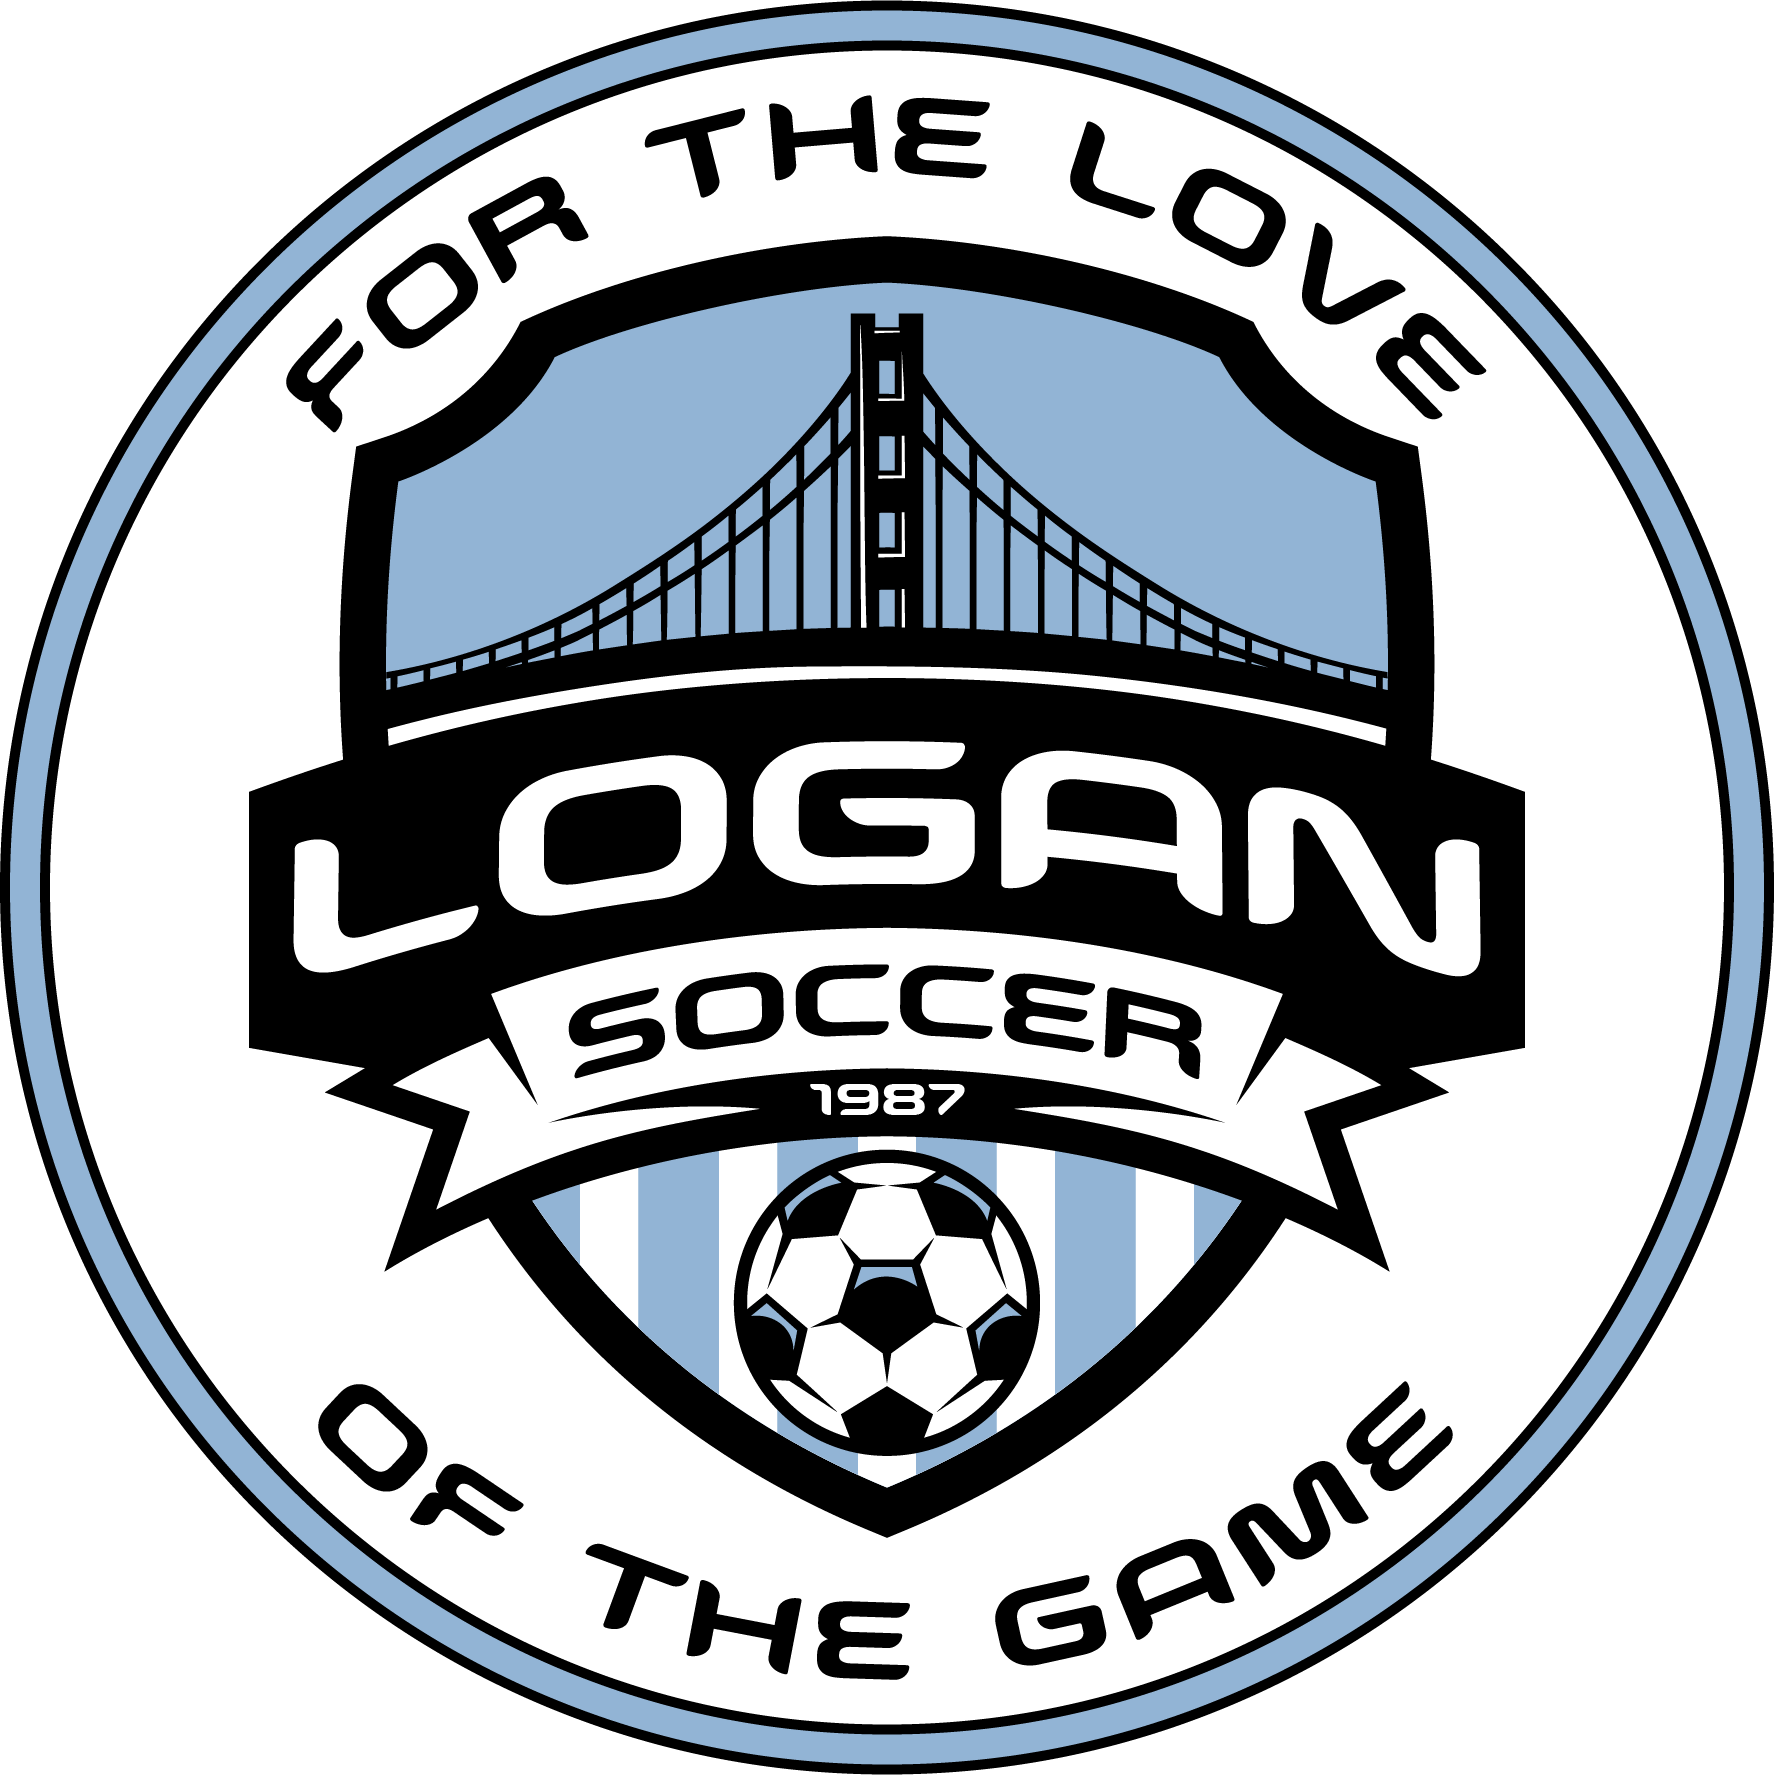 Logan Soccer Club - For the Love of the Game